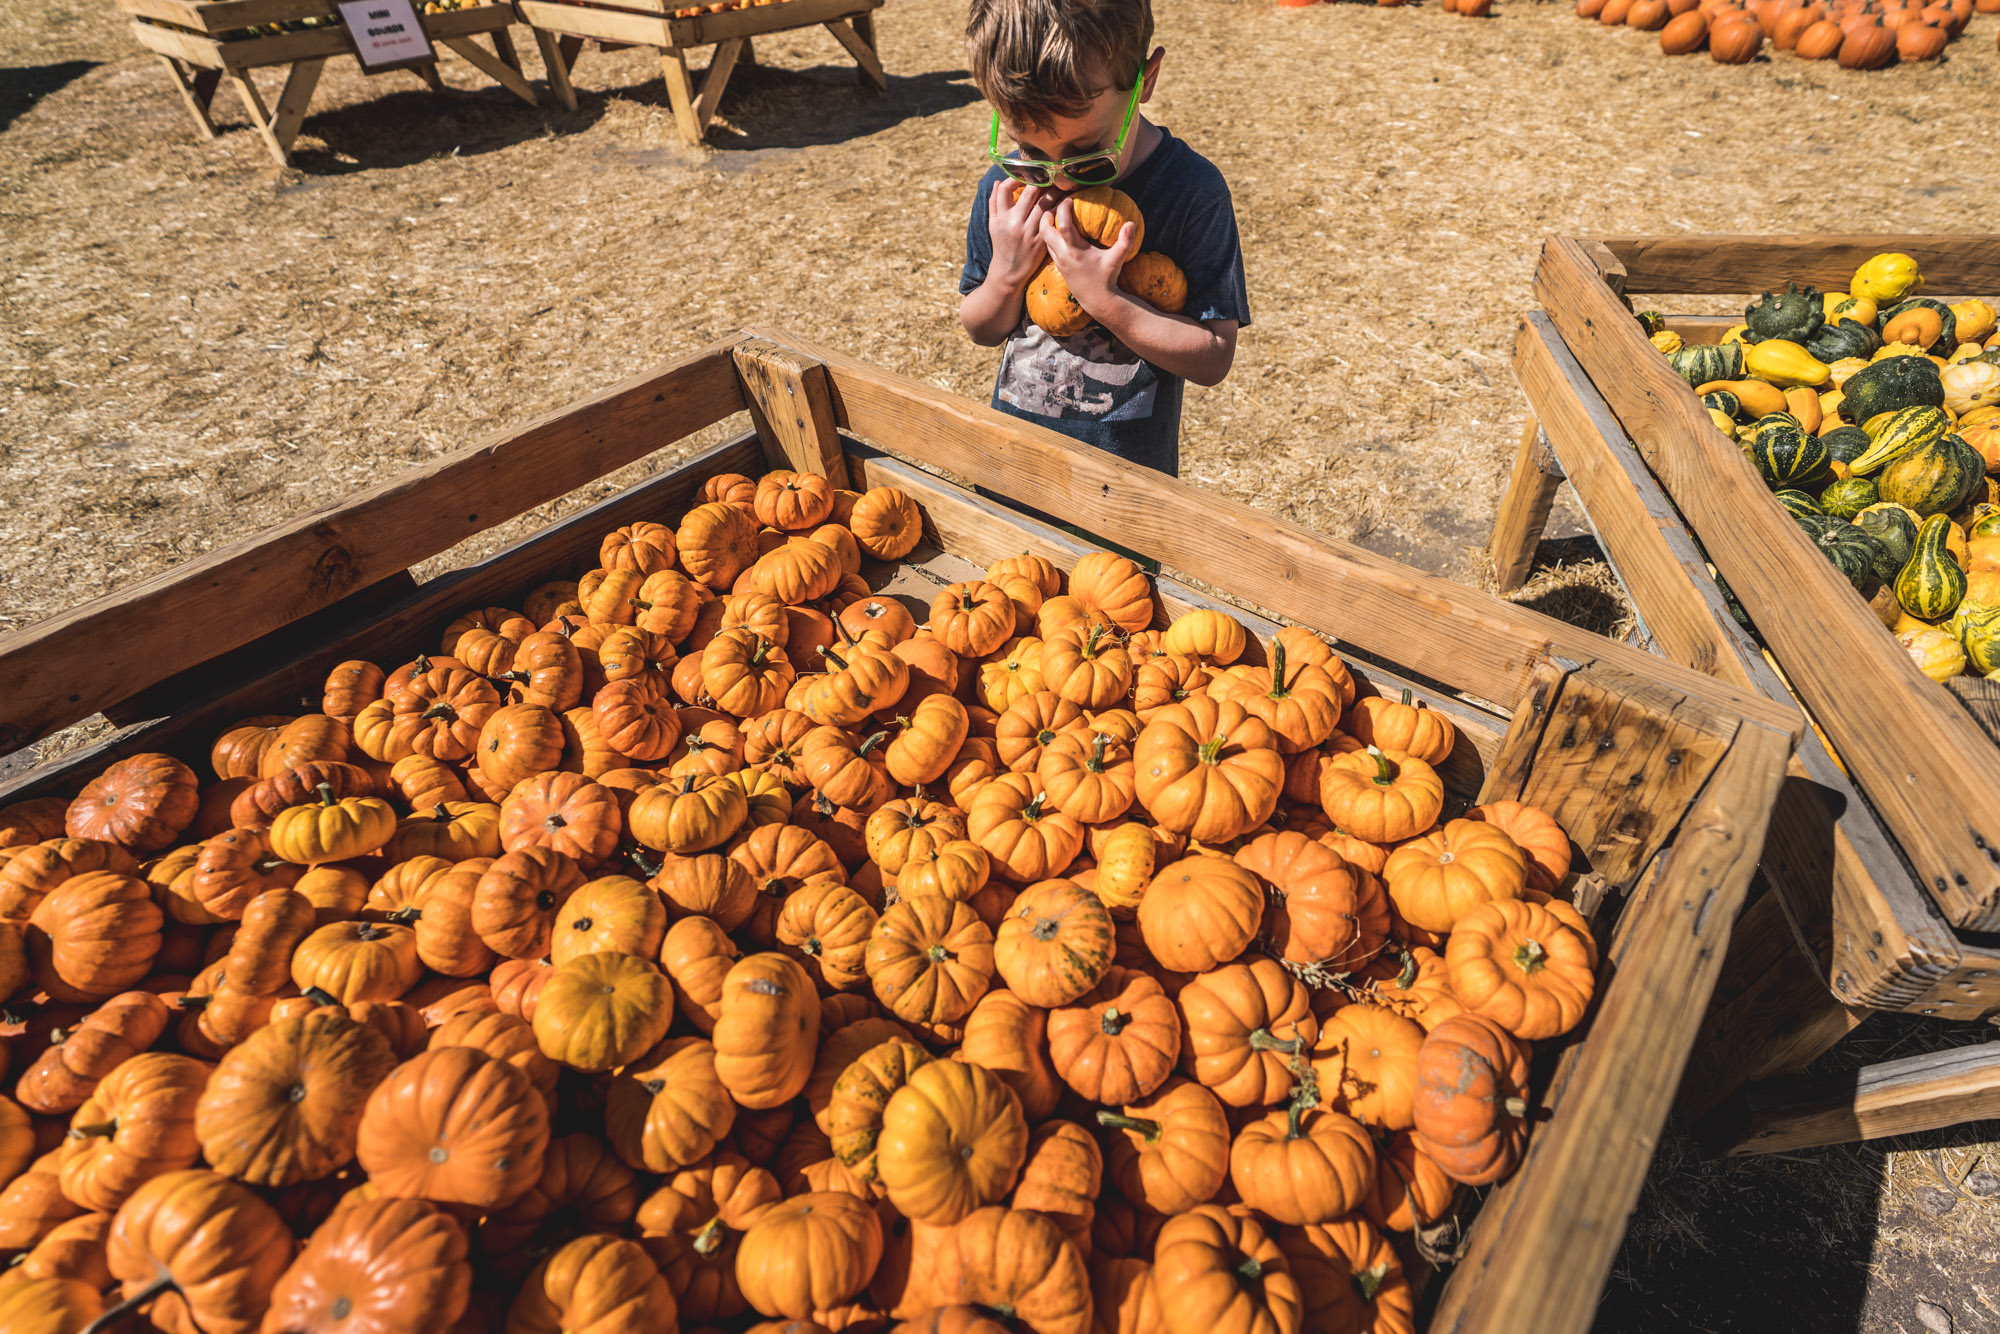 Little boy at a pumpkin patch holds several pumpkins in his arms in front of a giant container of mini pumpkins at the Flat Acres Farm in Parker, Colorado